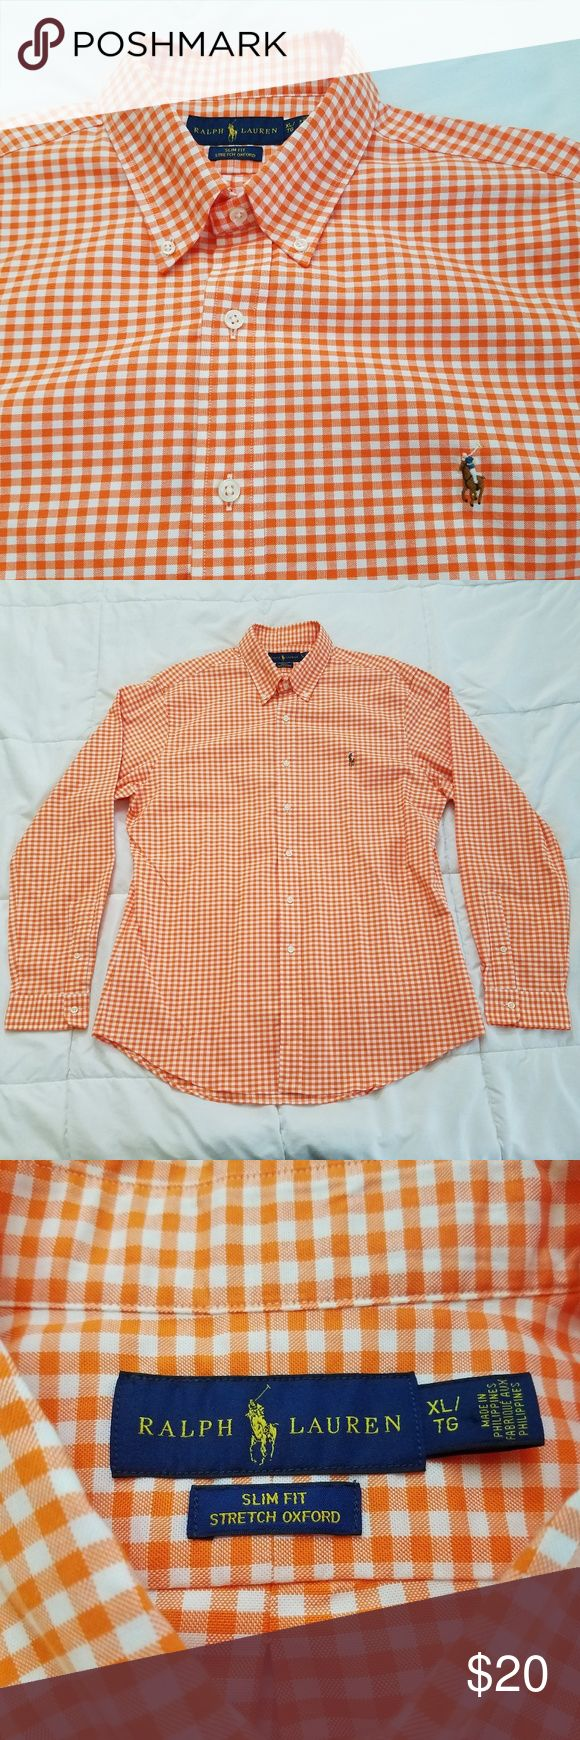 "Ralph Lauren Slim Fit Shirt Men's XL Orange Checks Good Used Condition  Ralph Lauren Dress Shirt Orange and White Checks Size: XL Slim Fit  Measurements are taken laid flat:  Pit to Pit - 23"" Shoulder to Shoulder - 20"" Shoulder to Cuff - 26"" Length - 30""  Shirt comes from a smoke and pet free home. Ralph Lauren Shirts Dress Shirts"